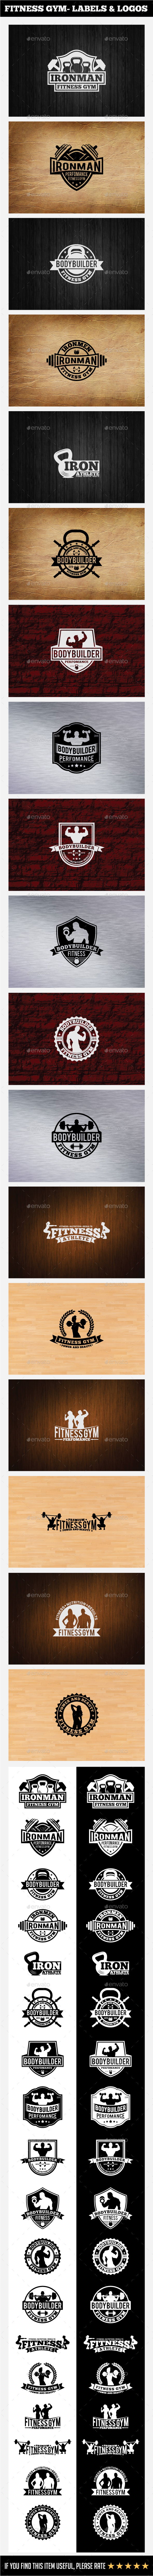 Fitness Gym Labels & Logos